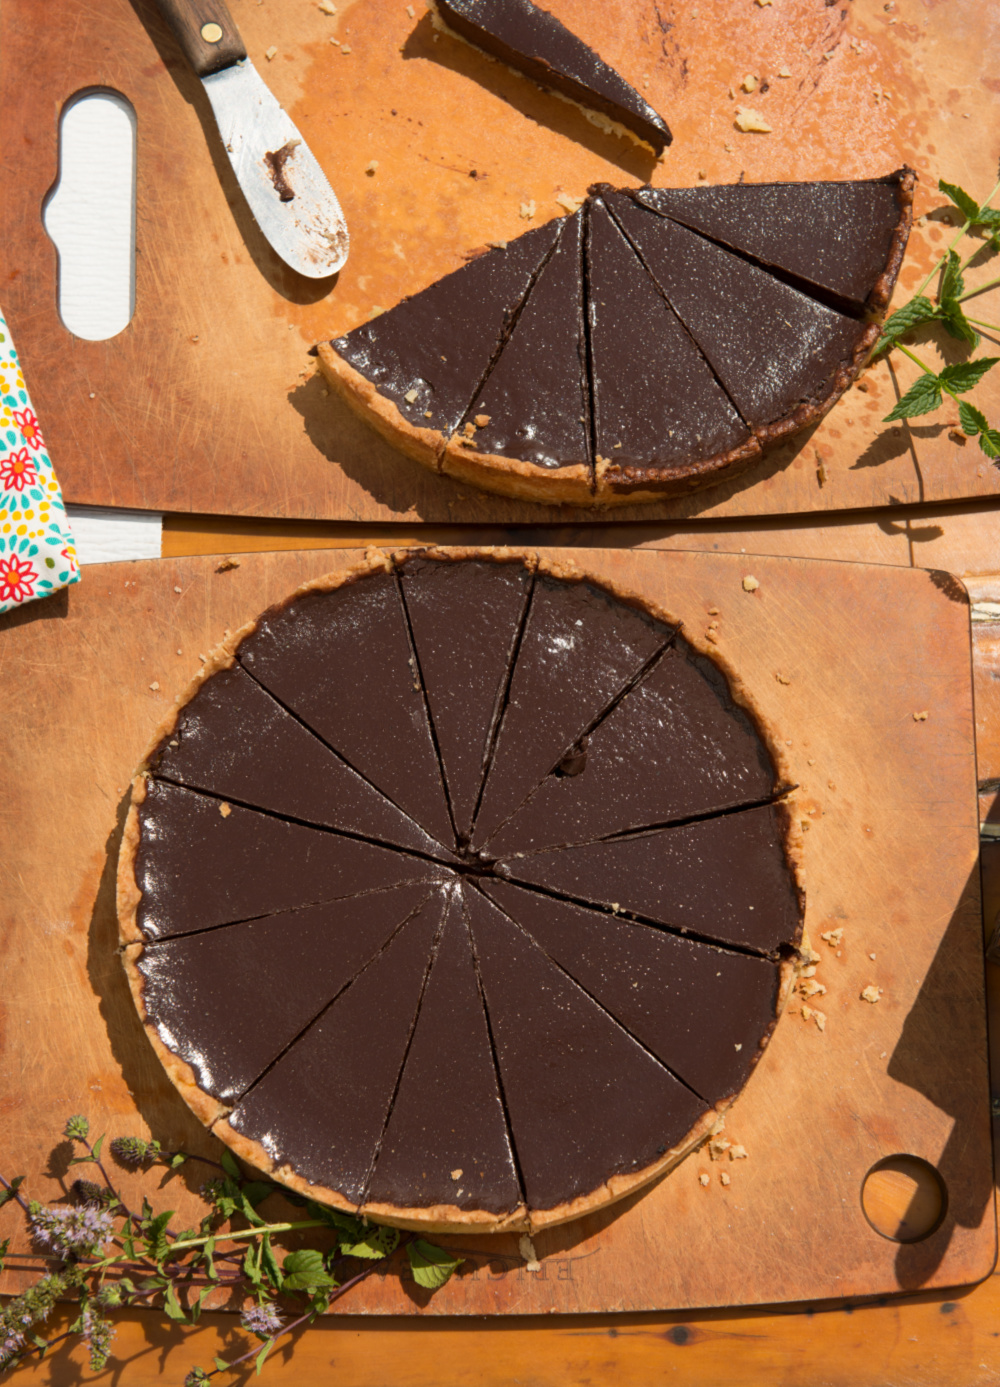 Chocolate Tart Photo by Douglas Merriam